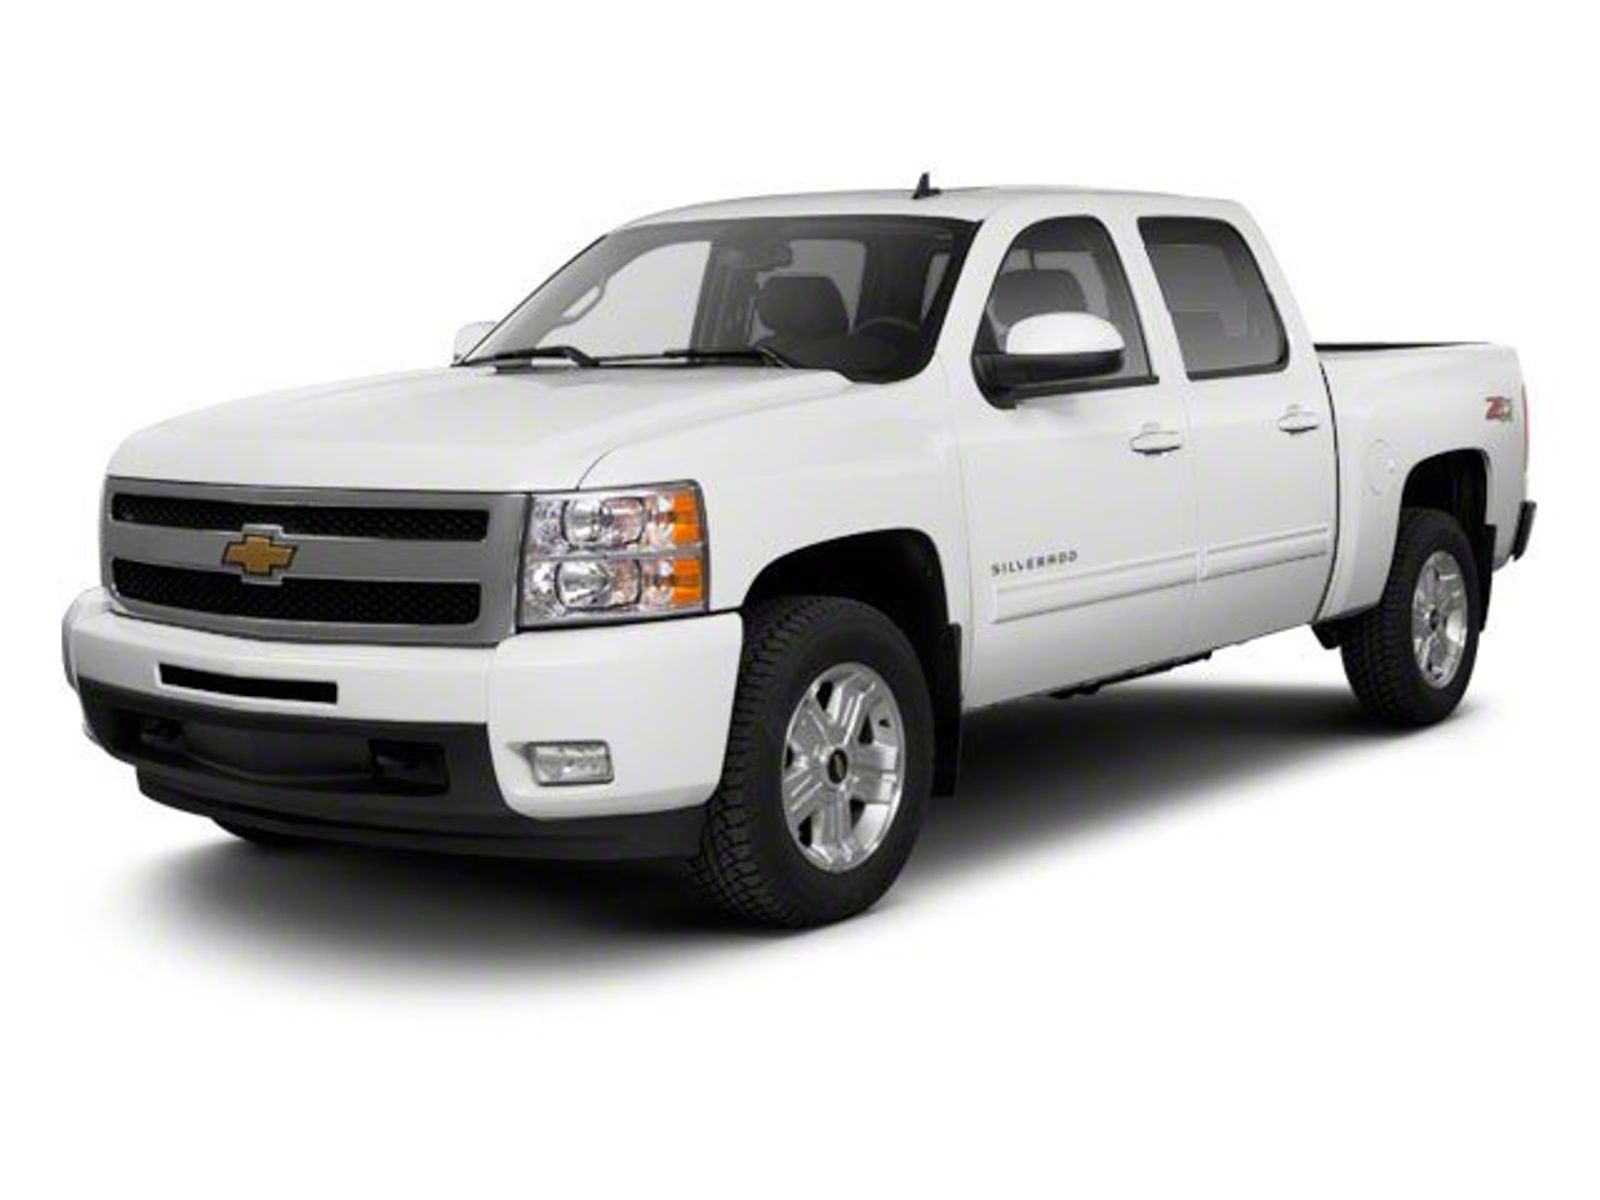 detail media chevrolet silveradolt total has chevy of pages en silverado lowest cost us nov content ownership news